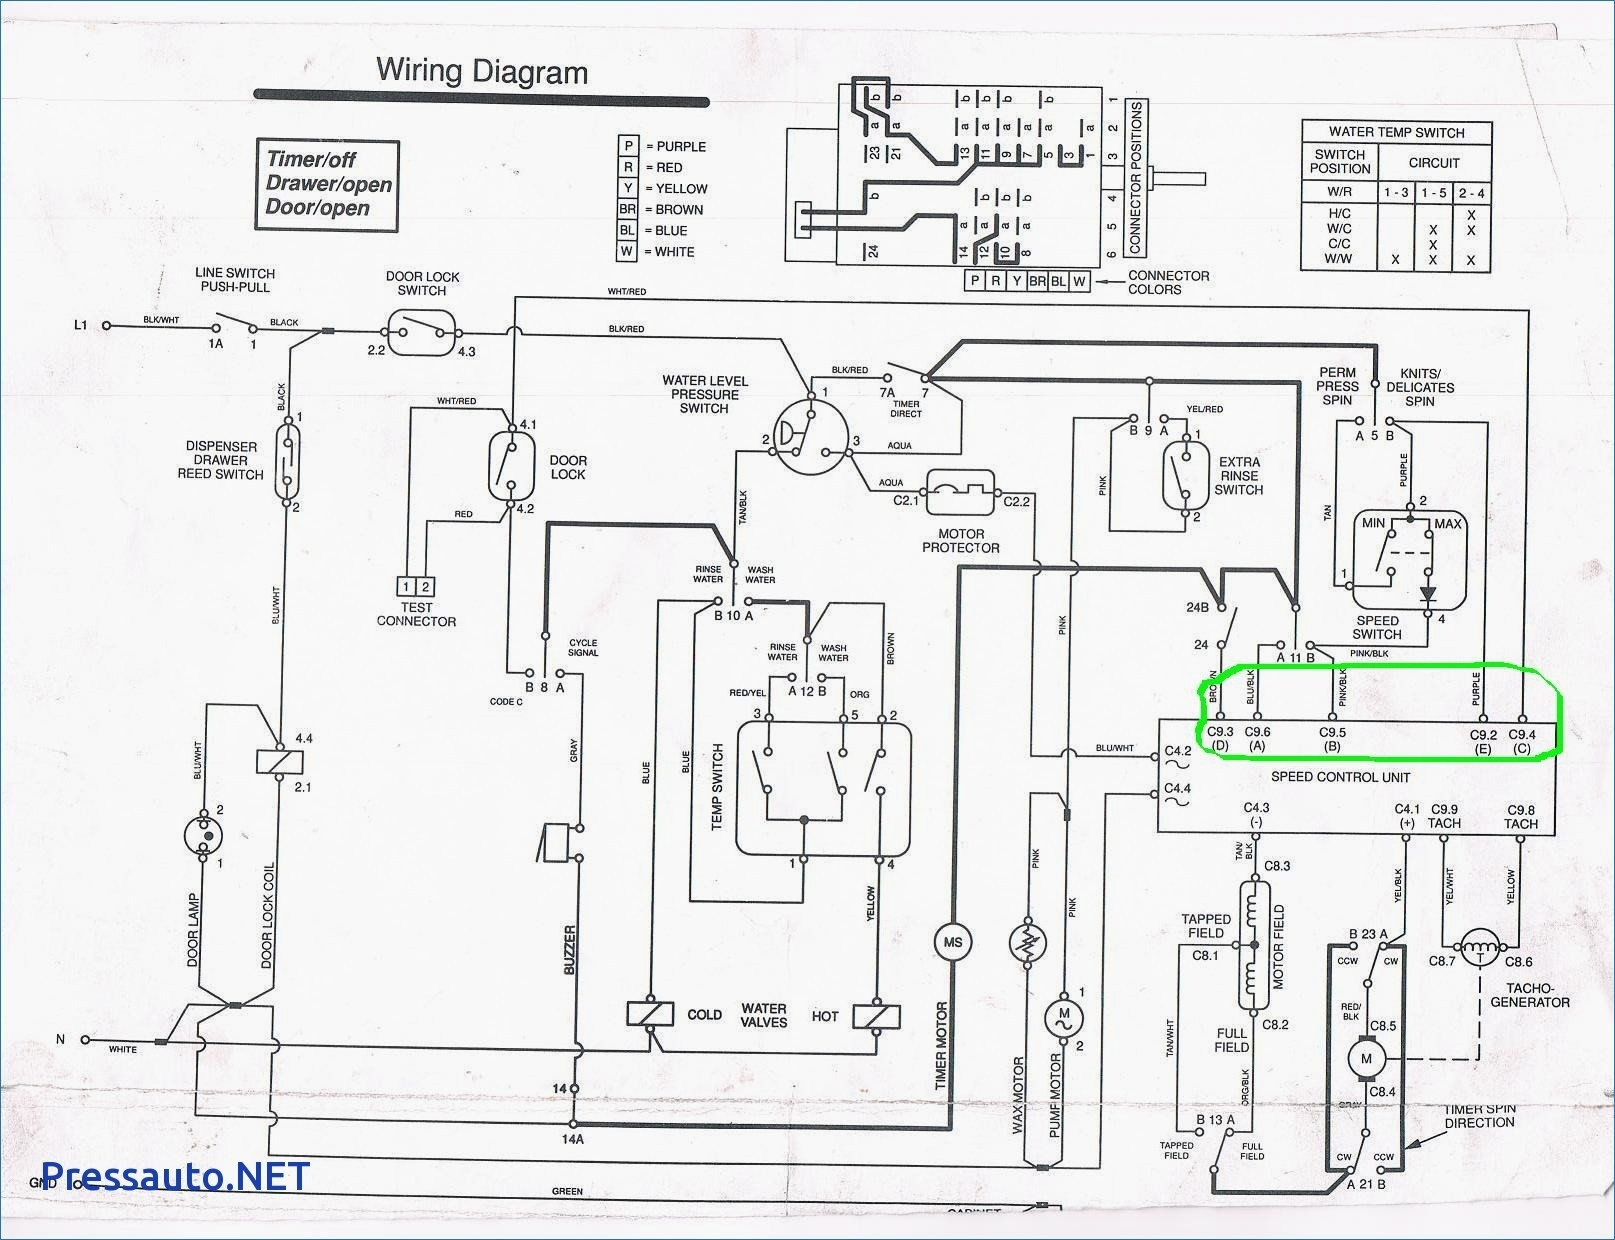 wiring diagram for whirlpool duet dryer